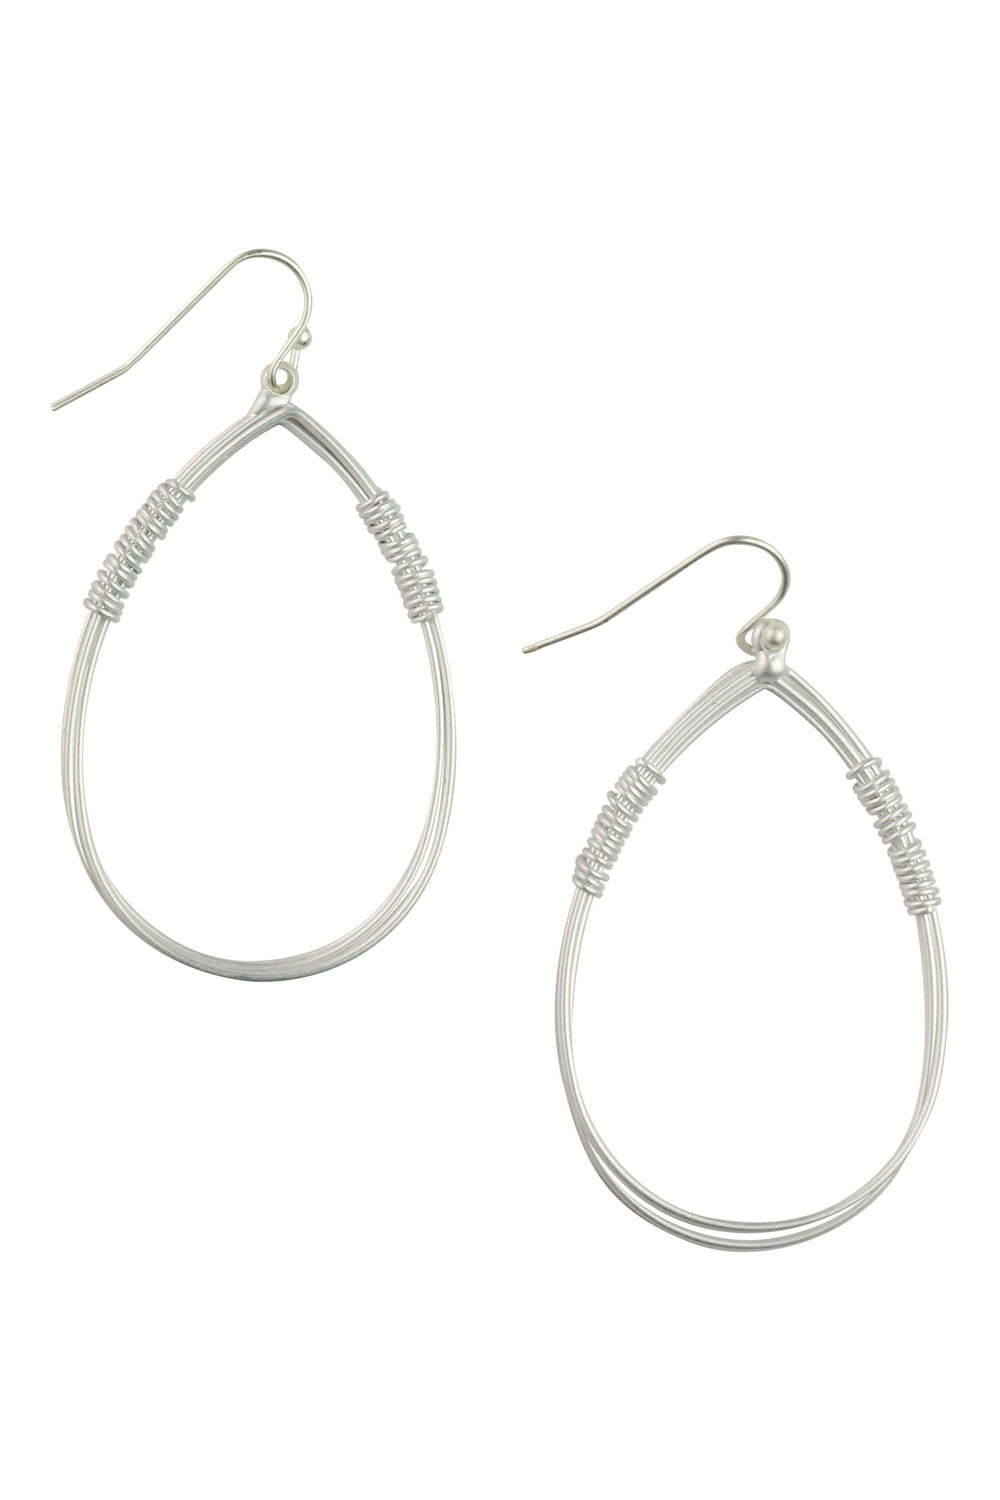 Silver Rib Detail Metal Earrings - Kenzie Tenzie